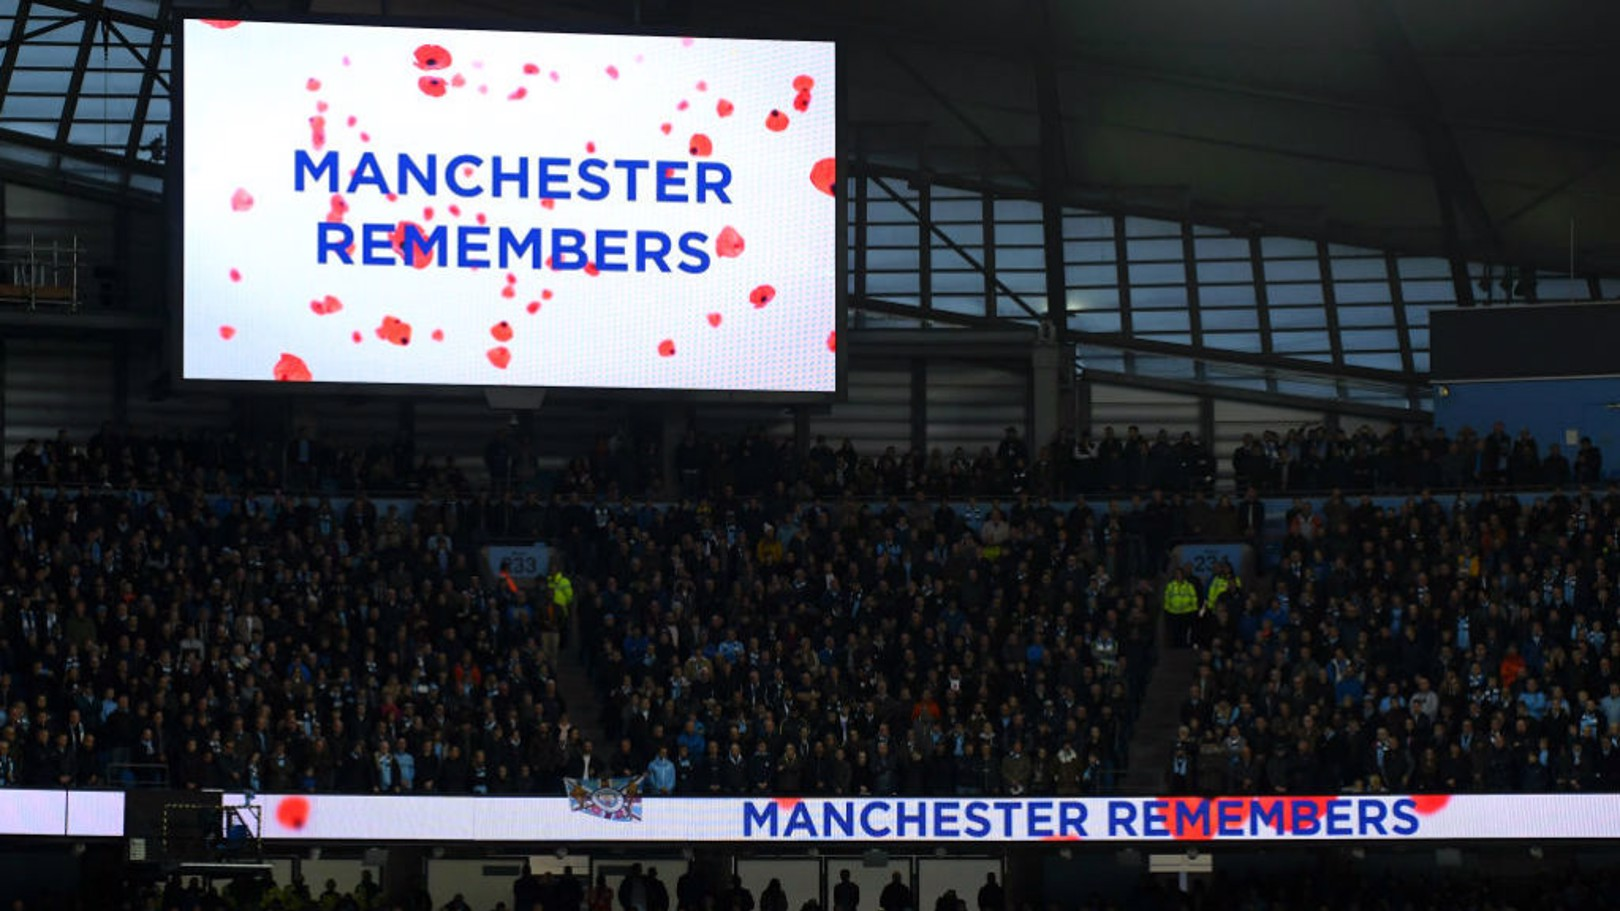 MANCHESTER REMEMBERS: The words say it all